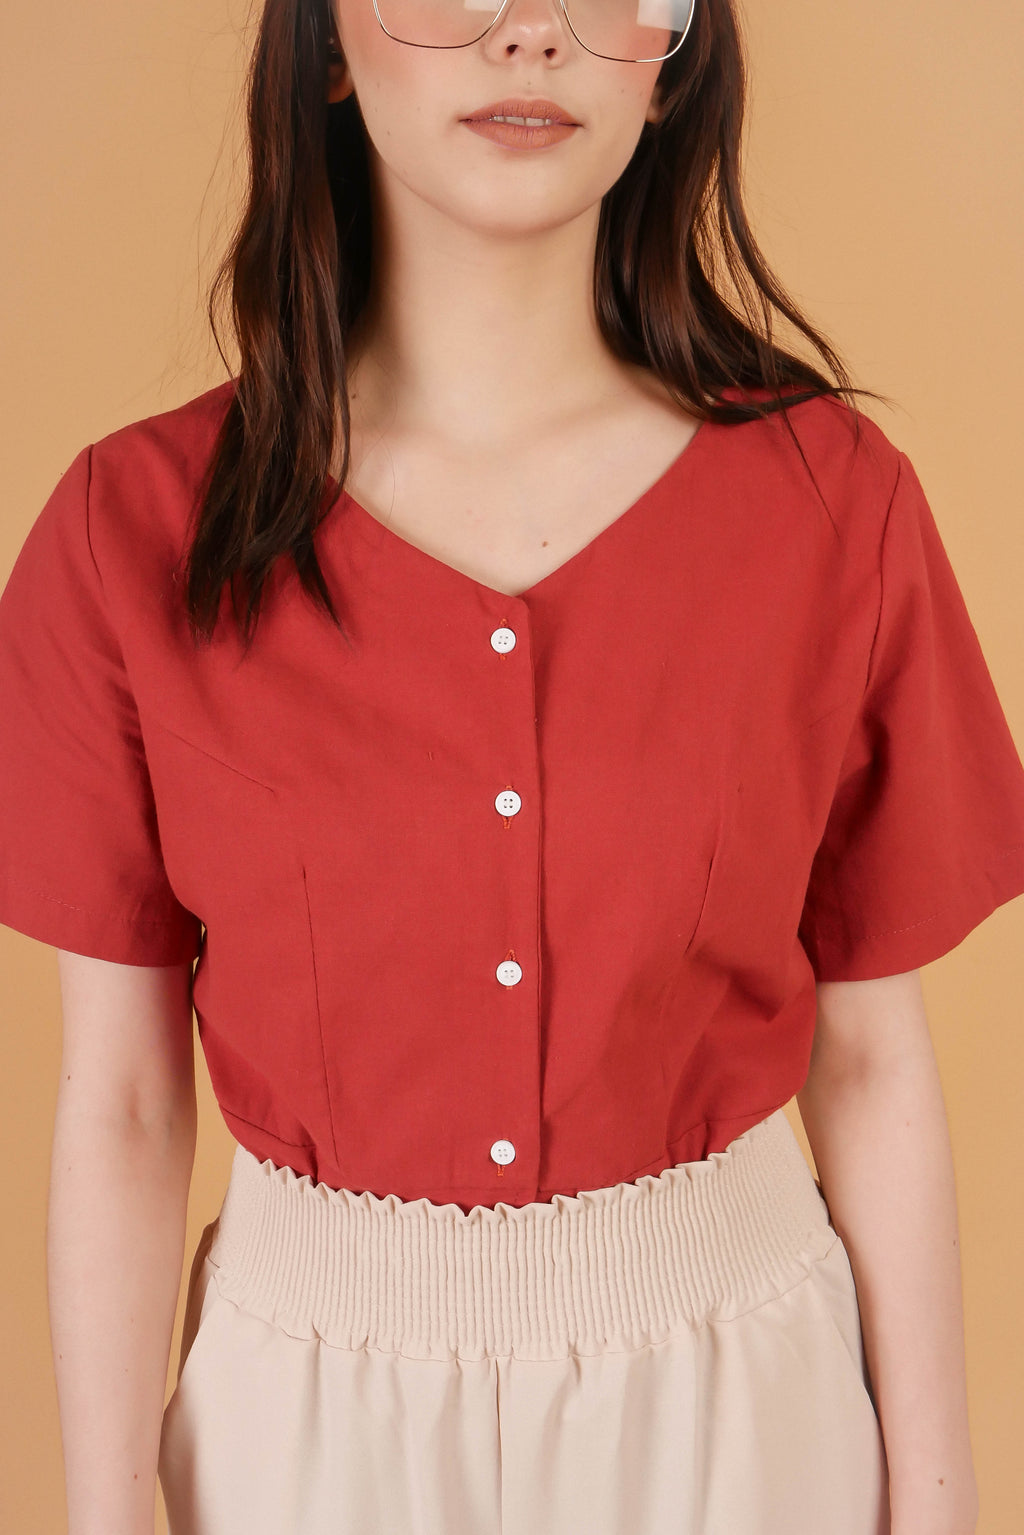 SORRENTO Buttoned Top